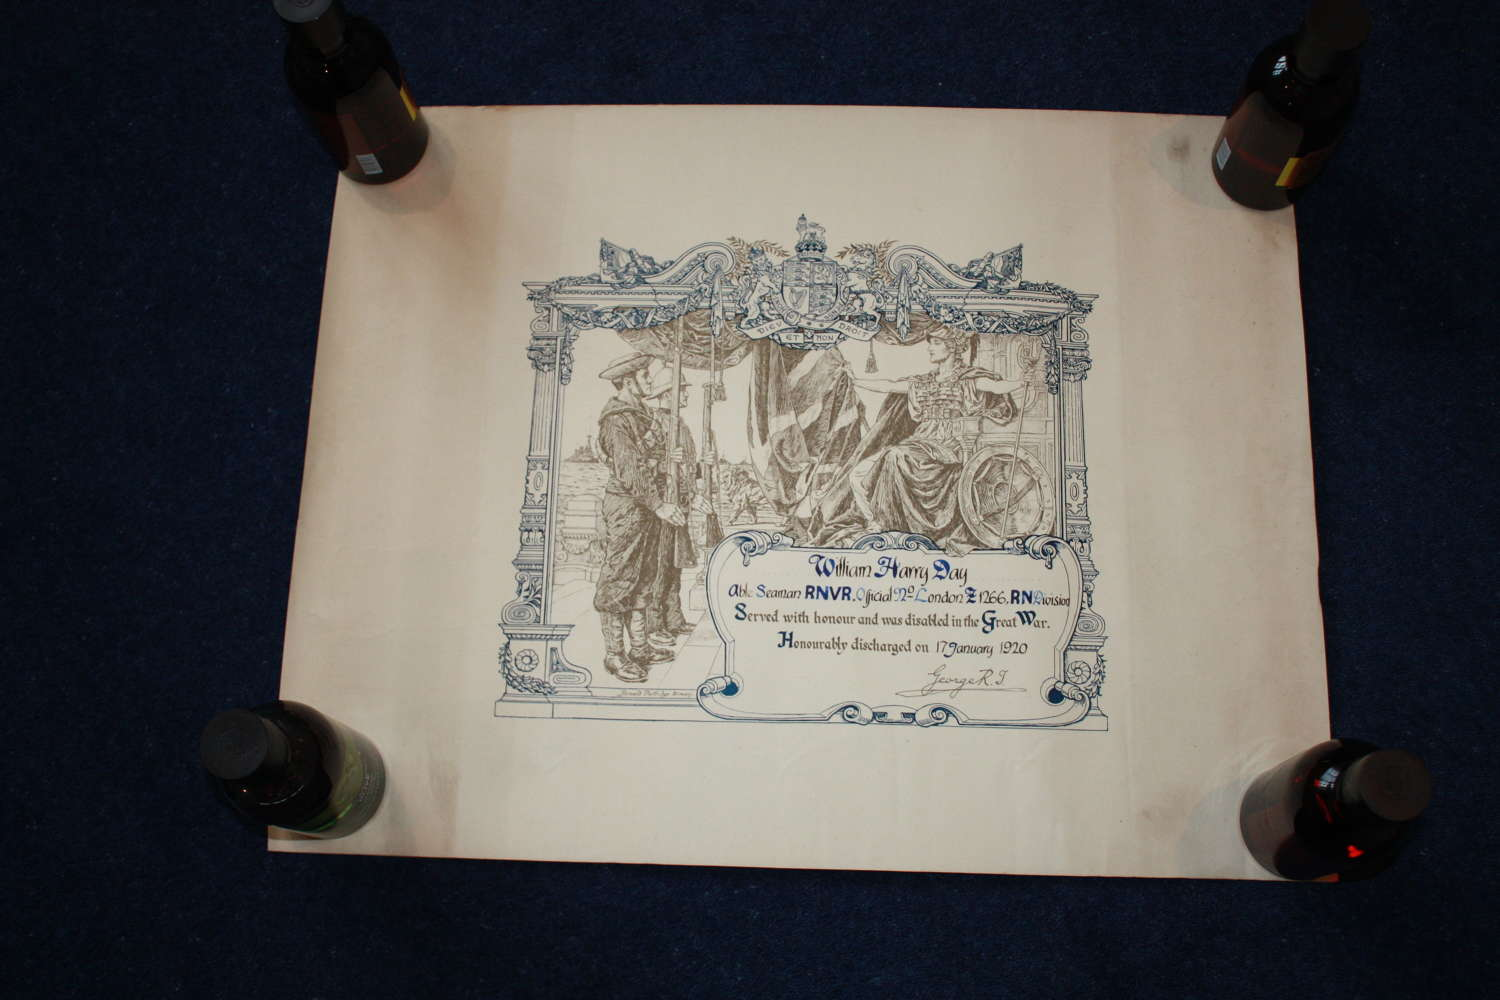 WW1 DISCHARGE CERTIFICATE: ROYAL NAVAL DIVISION